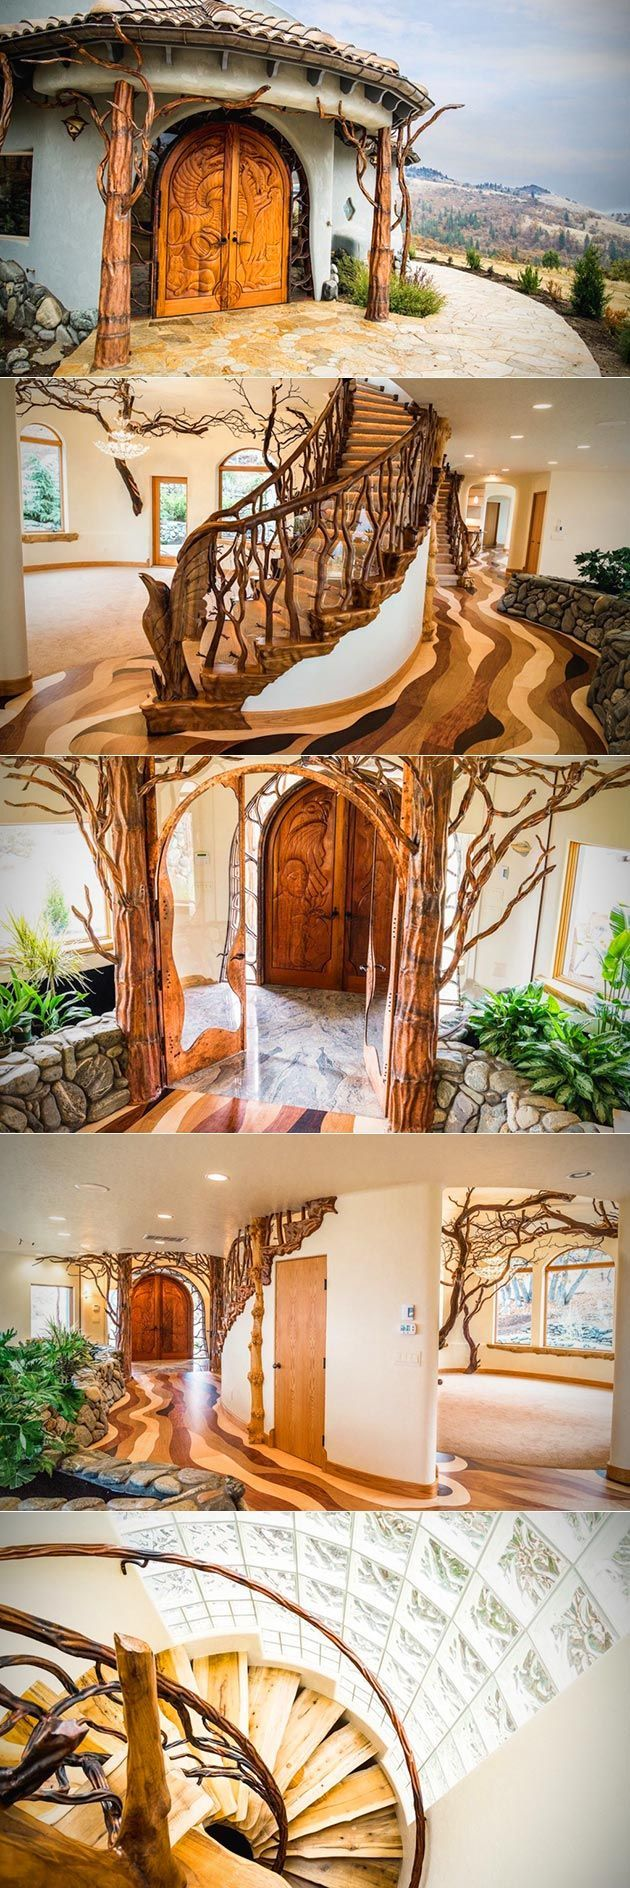 A breathtaking new home on the market looks like something straight out of a fantasy novel. Nestled in the foothills of Ashland, Oregon, the fairytale-like Shining Hand Ranch is a custom-built dwelling with a spacious treehouse-like interior and a riverine-like floor. Heated and cooled with geothermal energy, this one-of-a-kind home features intricate flora and fauna carvings—with dragons, eagles, coyotes, and more—and overlooks amazing views of the surrounding mountains, including the tip…